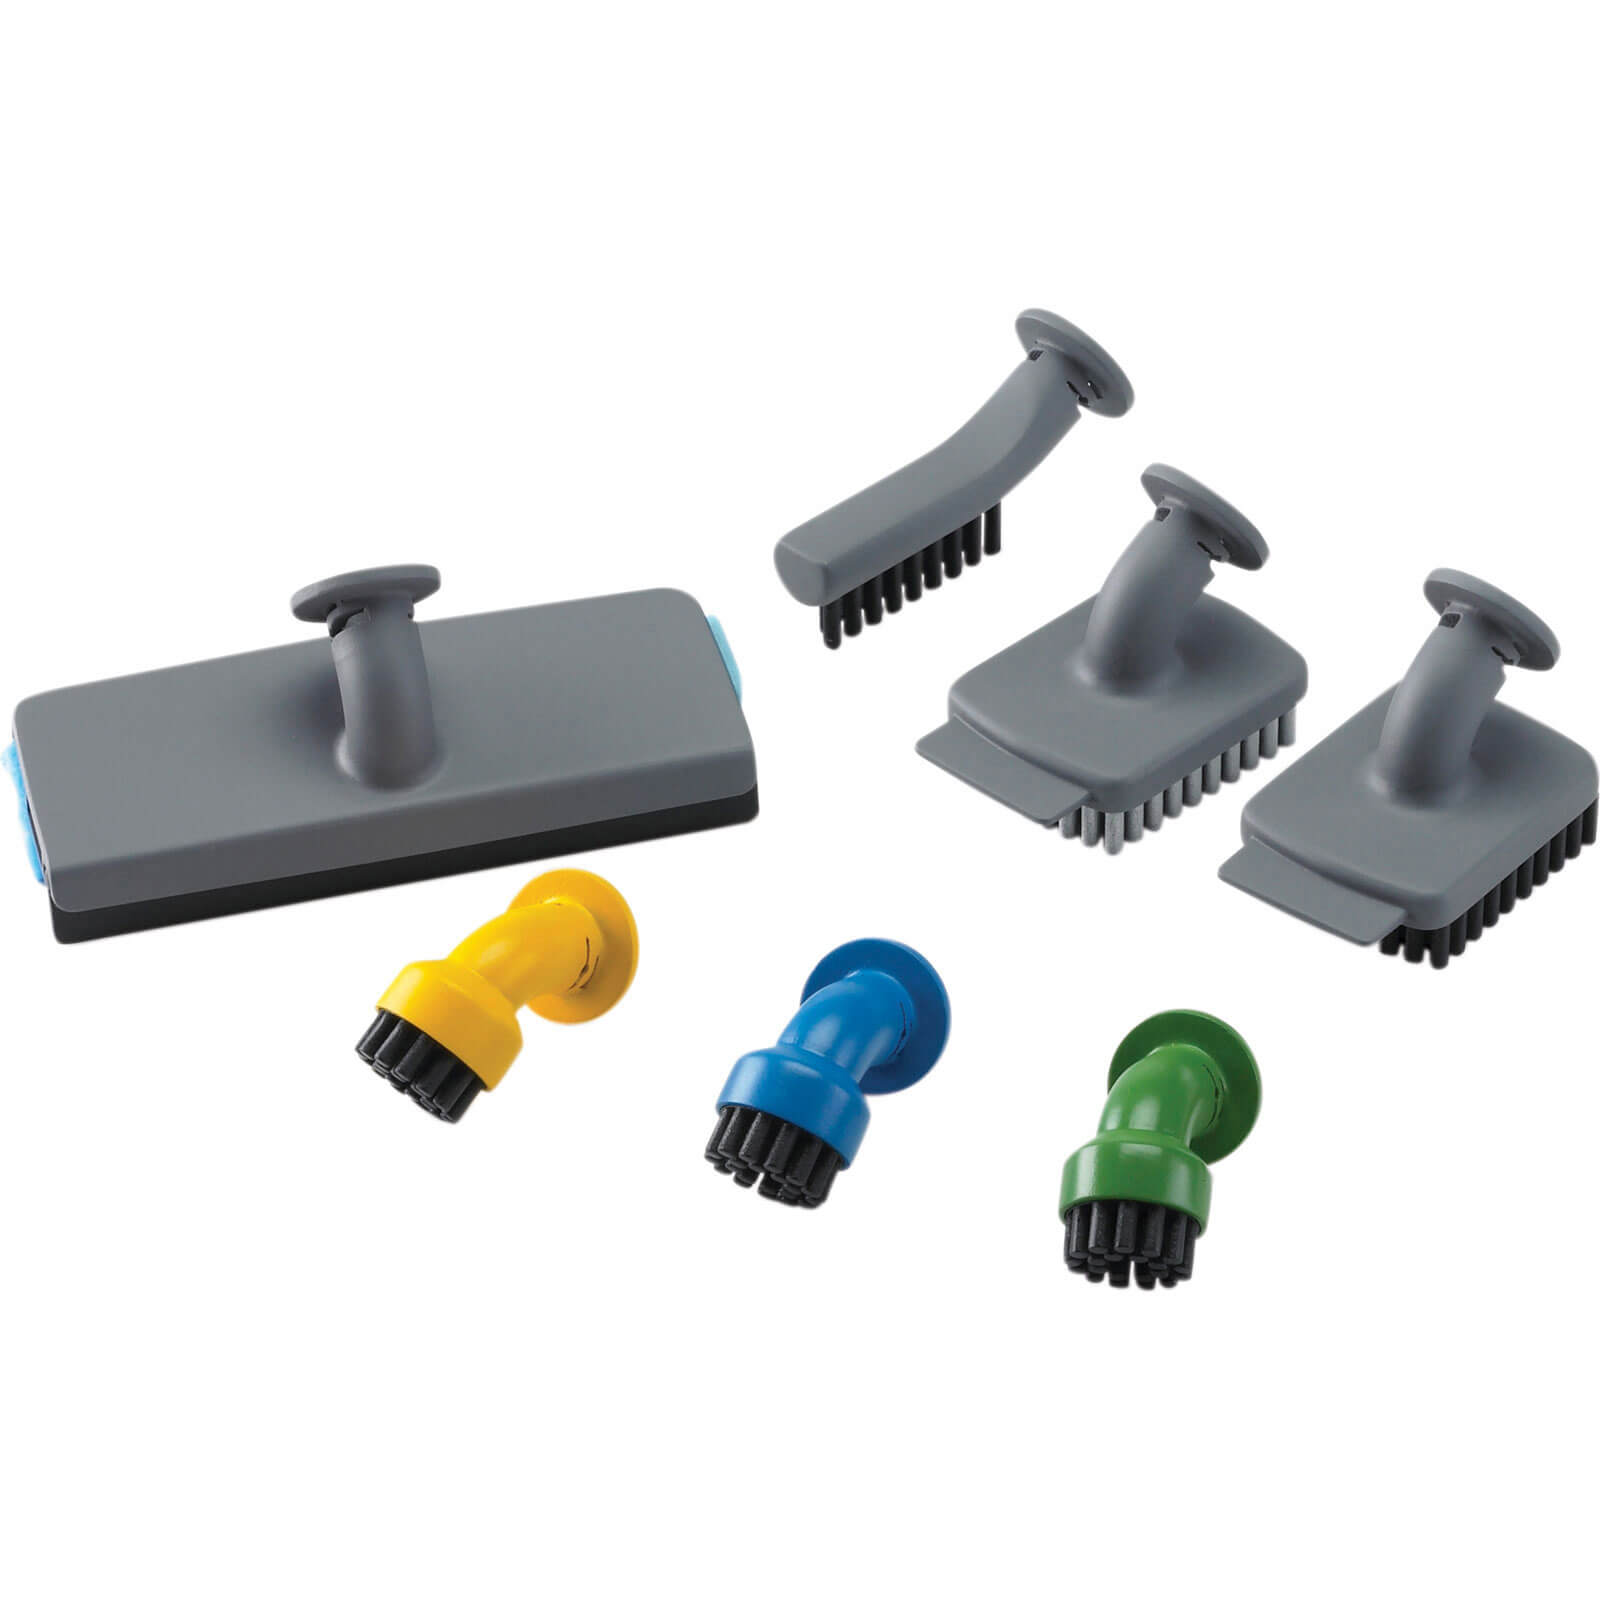 Image of Black & Decker 7 Piece Steam Mop Accessory Kit for FSM Steam Mops